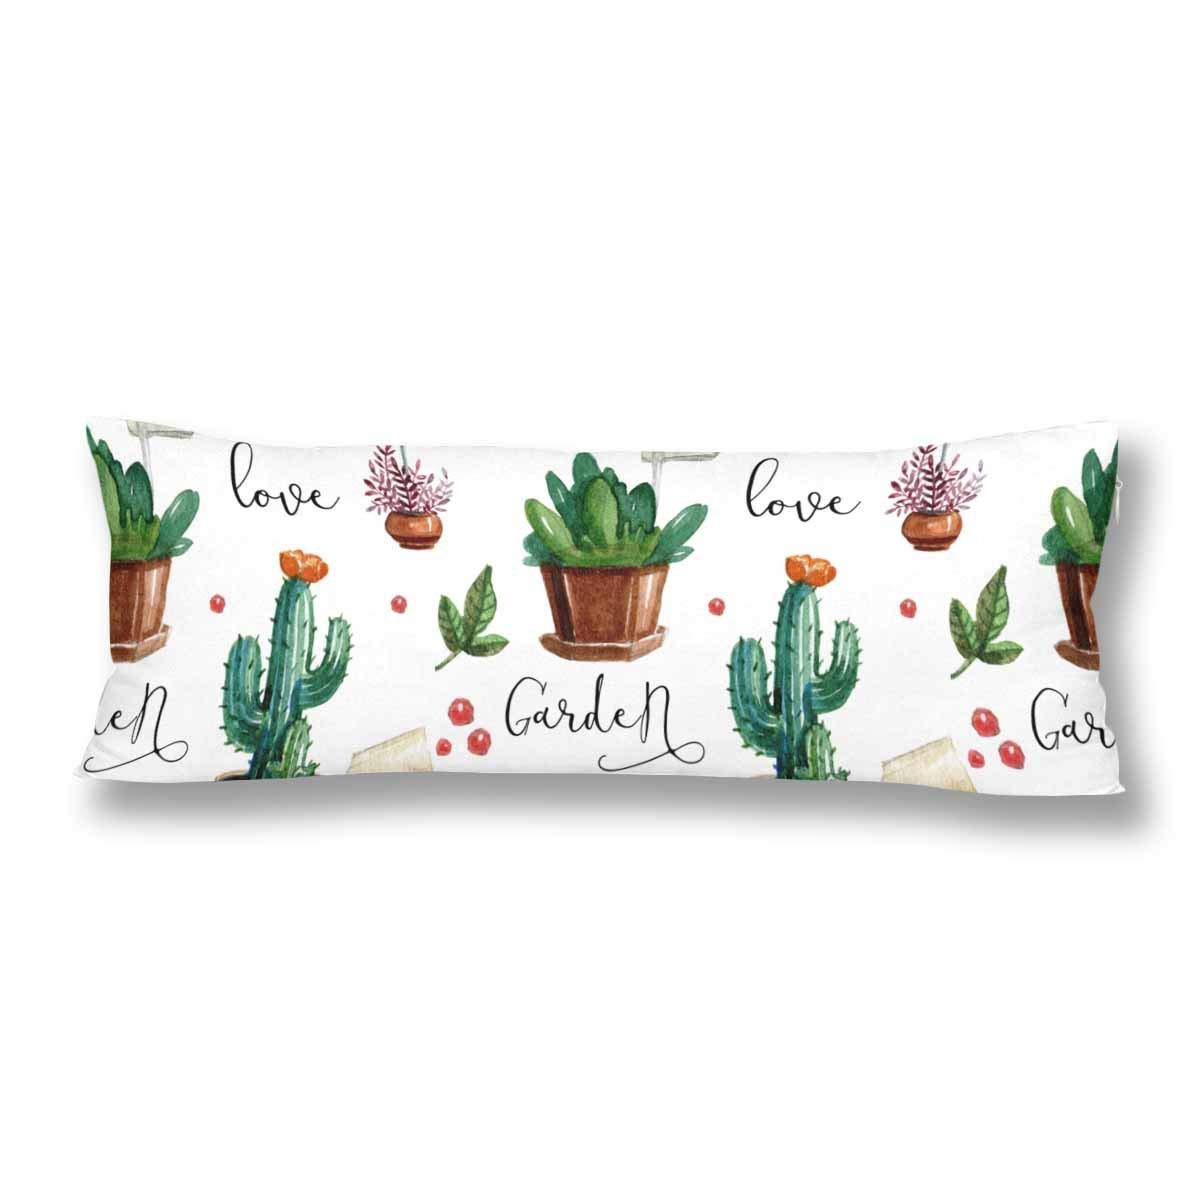 abphoto watercolor flower pots love cactus leaves body pillow covers pillowcase 20x60 inch succulent plant body pillow case protector